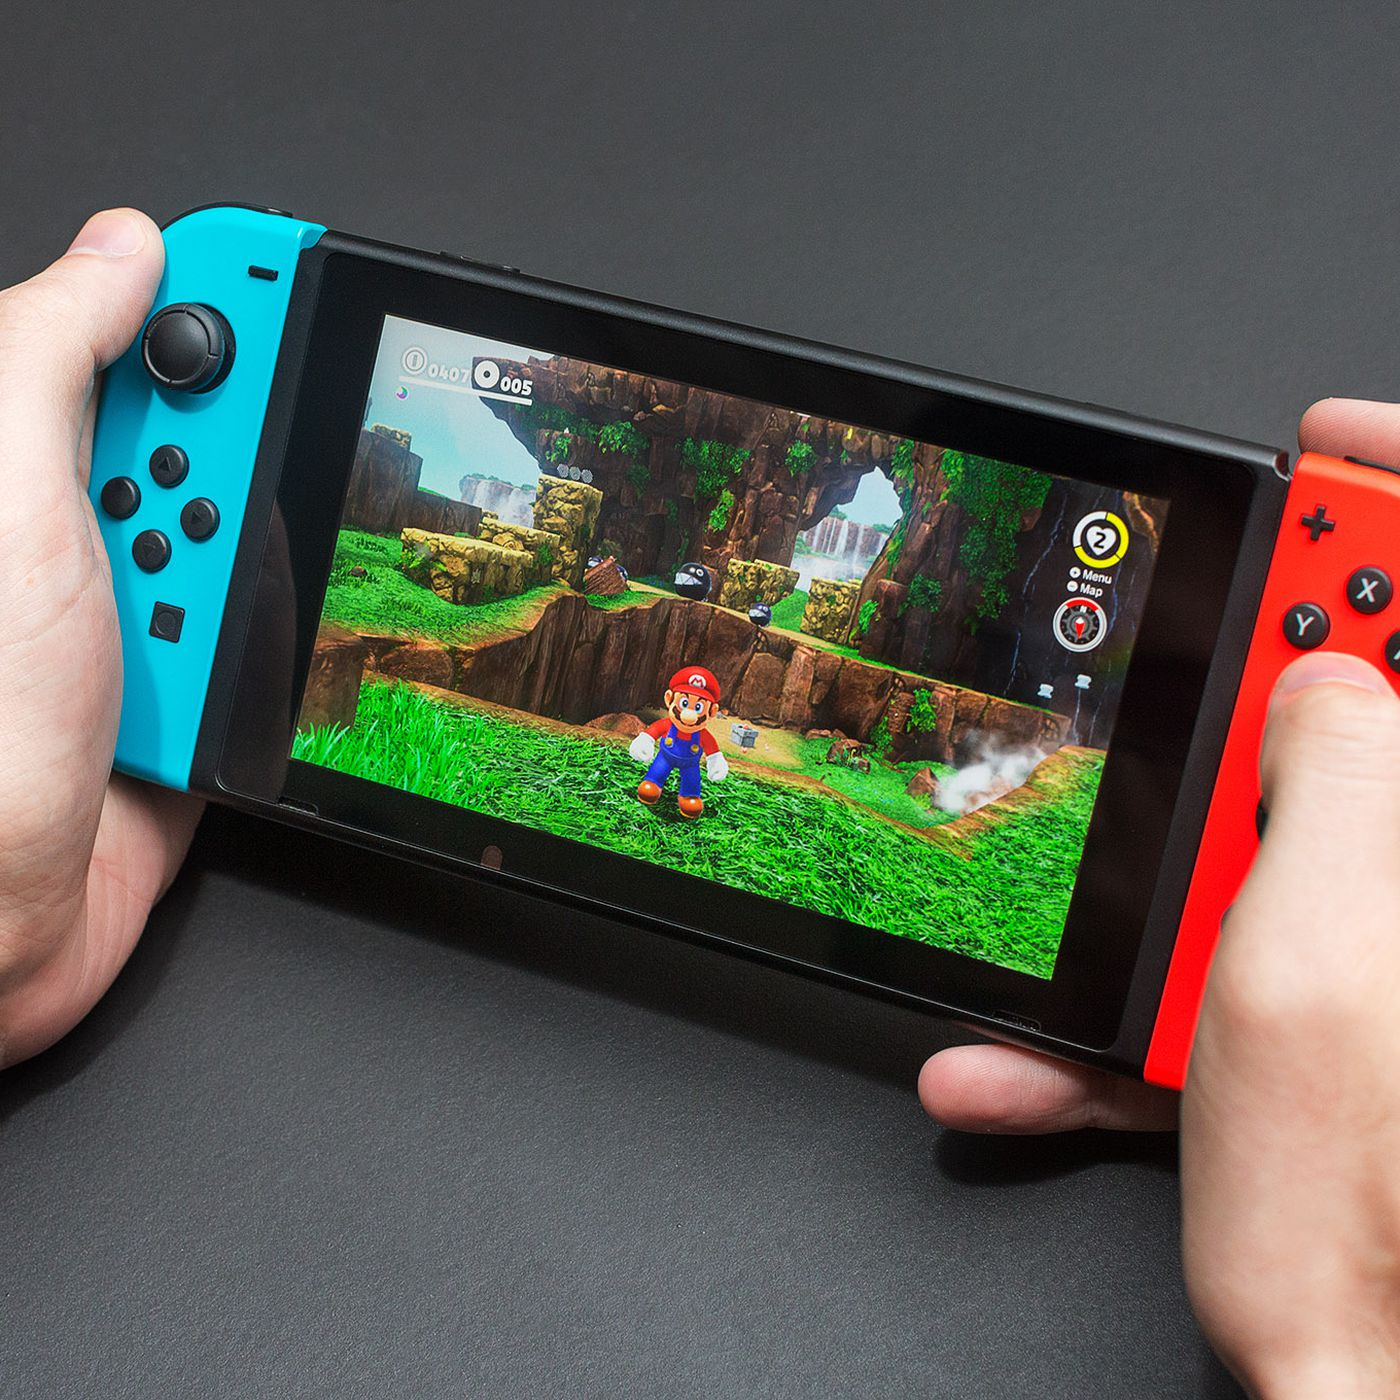 The Nintendo Switch online service is launching in September